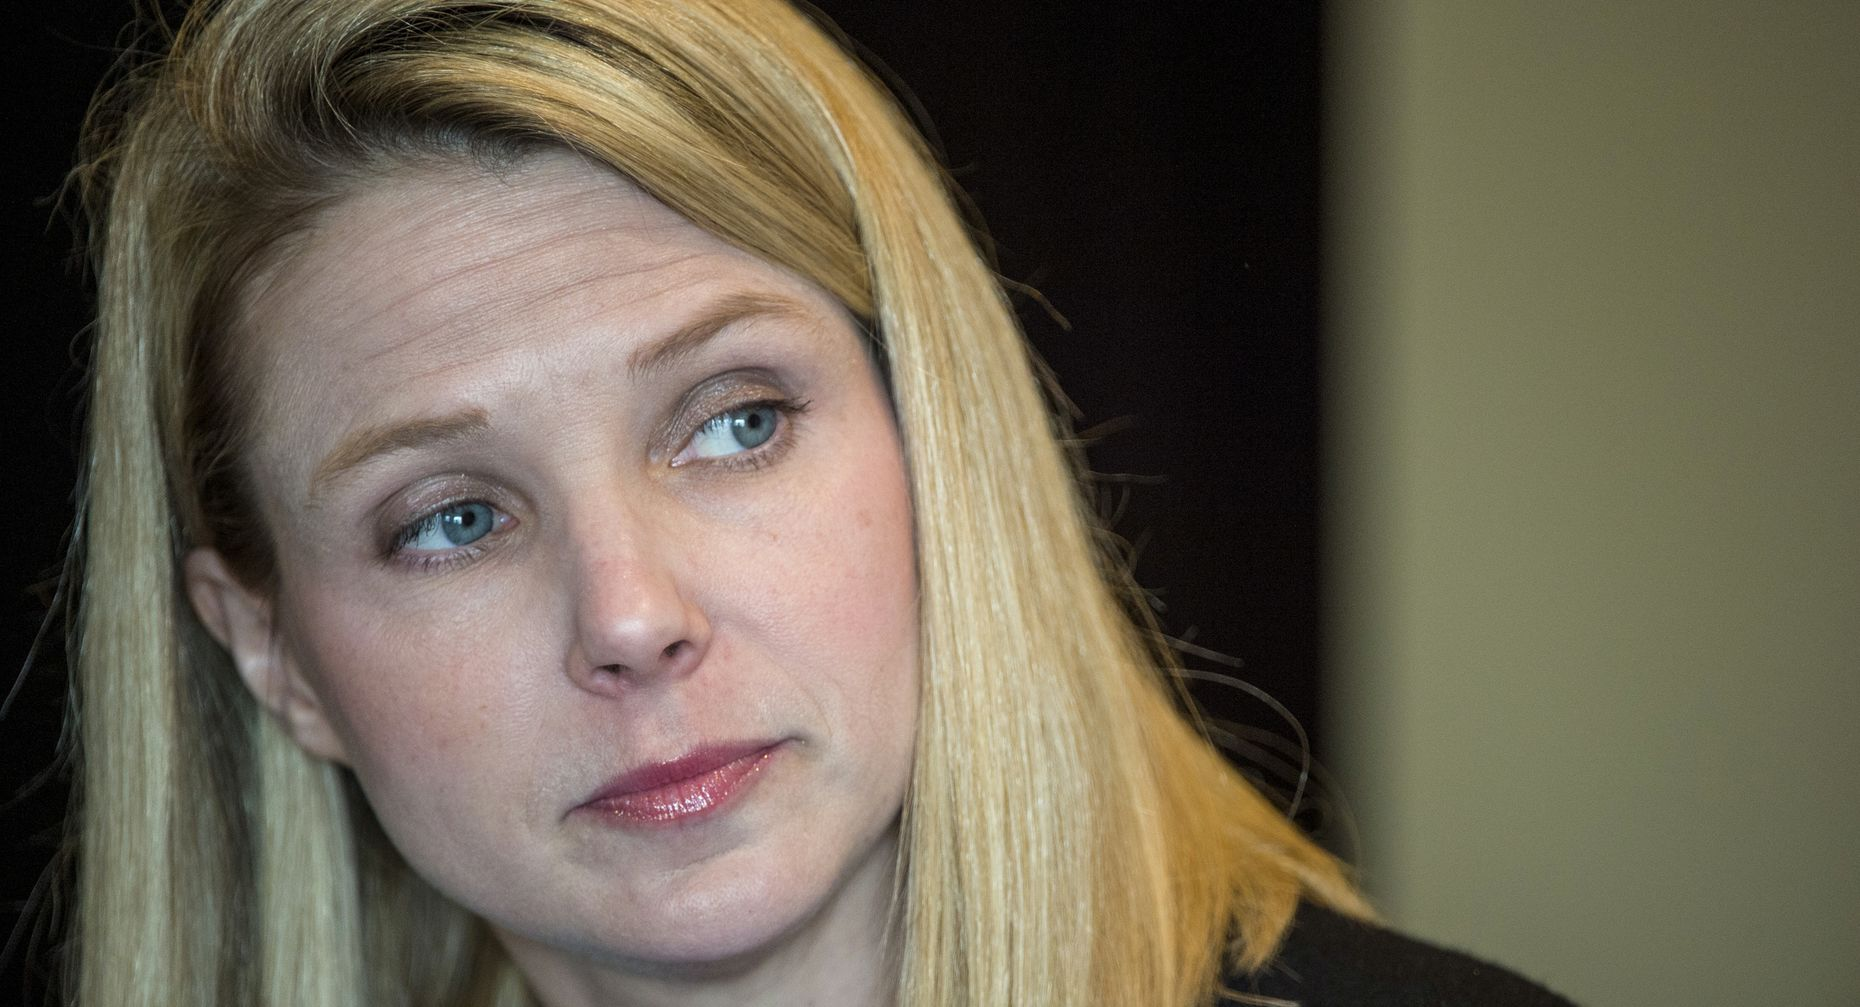 Yahoo CEO Marissa Mayer. Photo by Bloomberg.